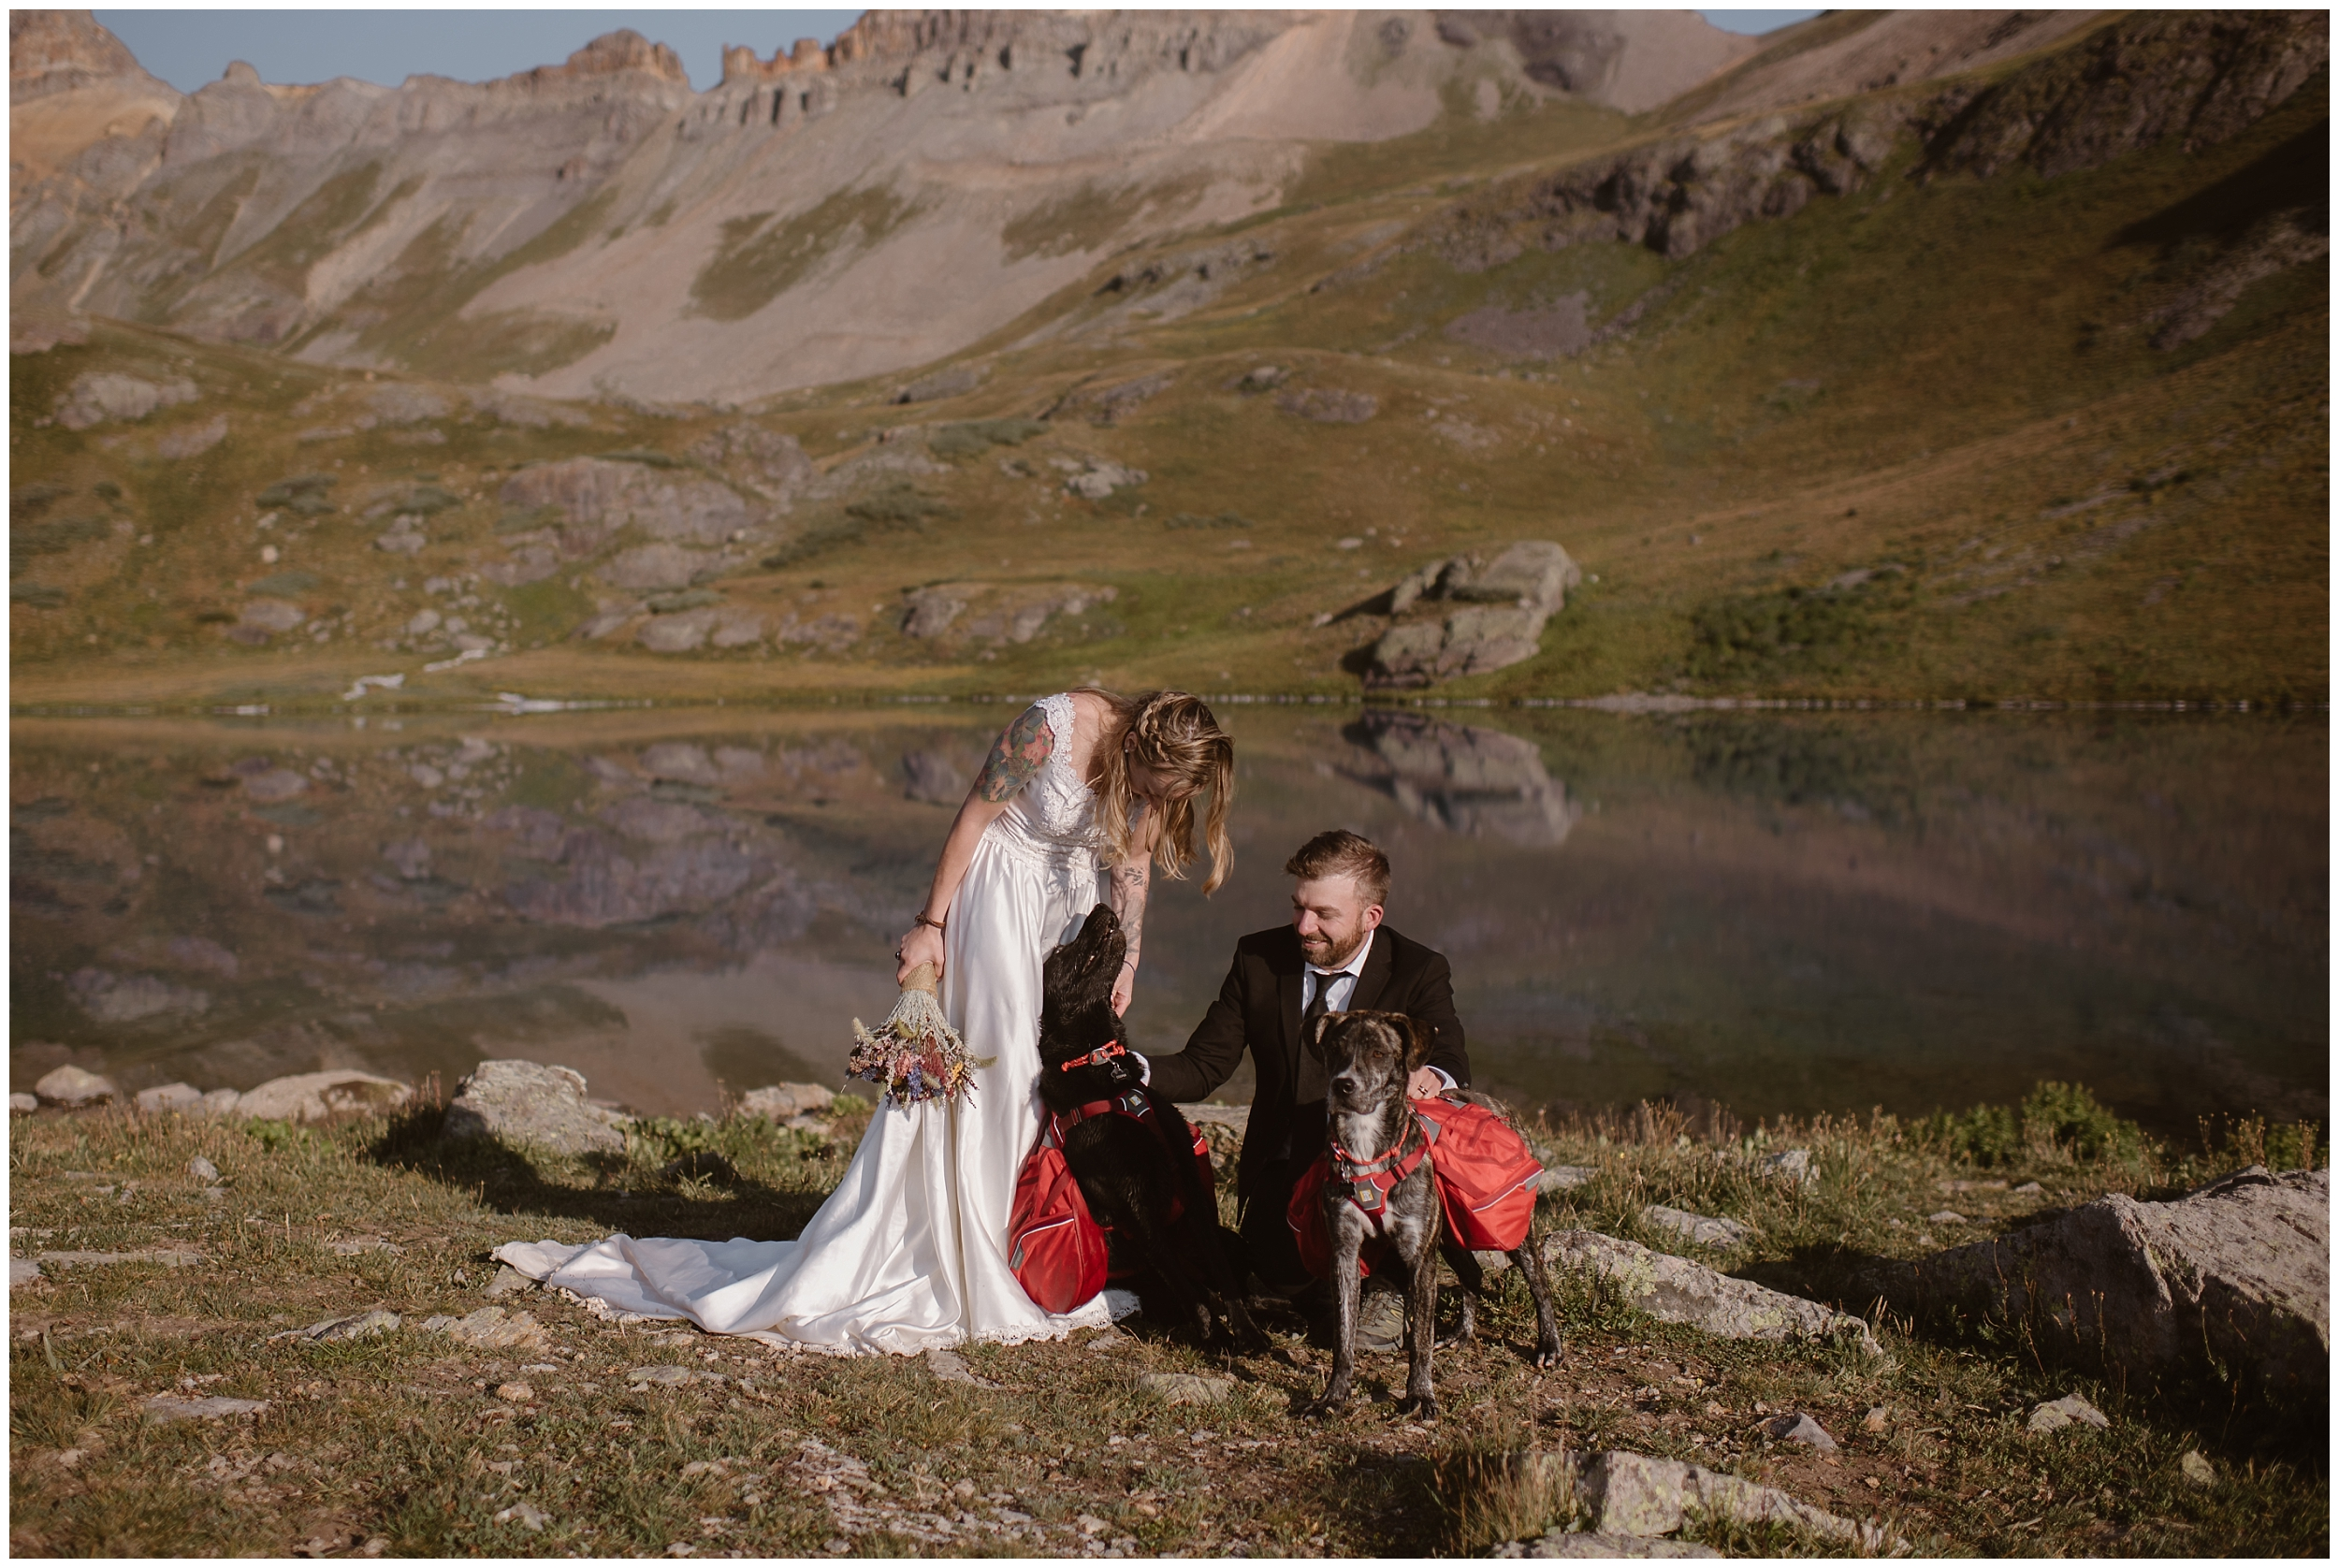 The bride and groom pose next to a beautiful alpine lake with their two pups, Cooper and Trek. Eloping with dogs is totally possible! If your pup is important to you, include them in your small simple wedding like Brecka and Nick did for their Colorado adventure elopement.